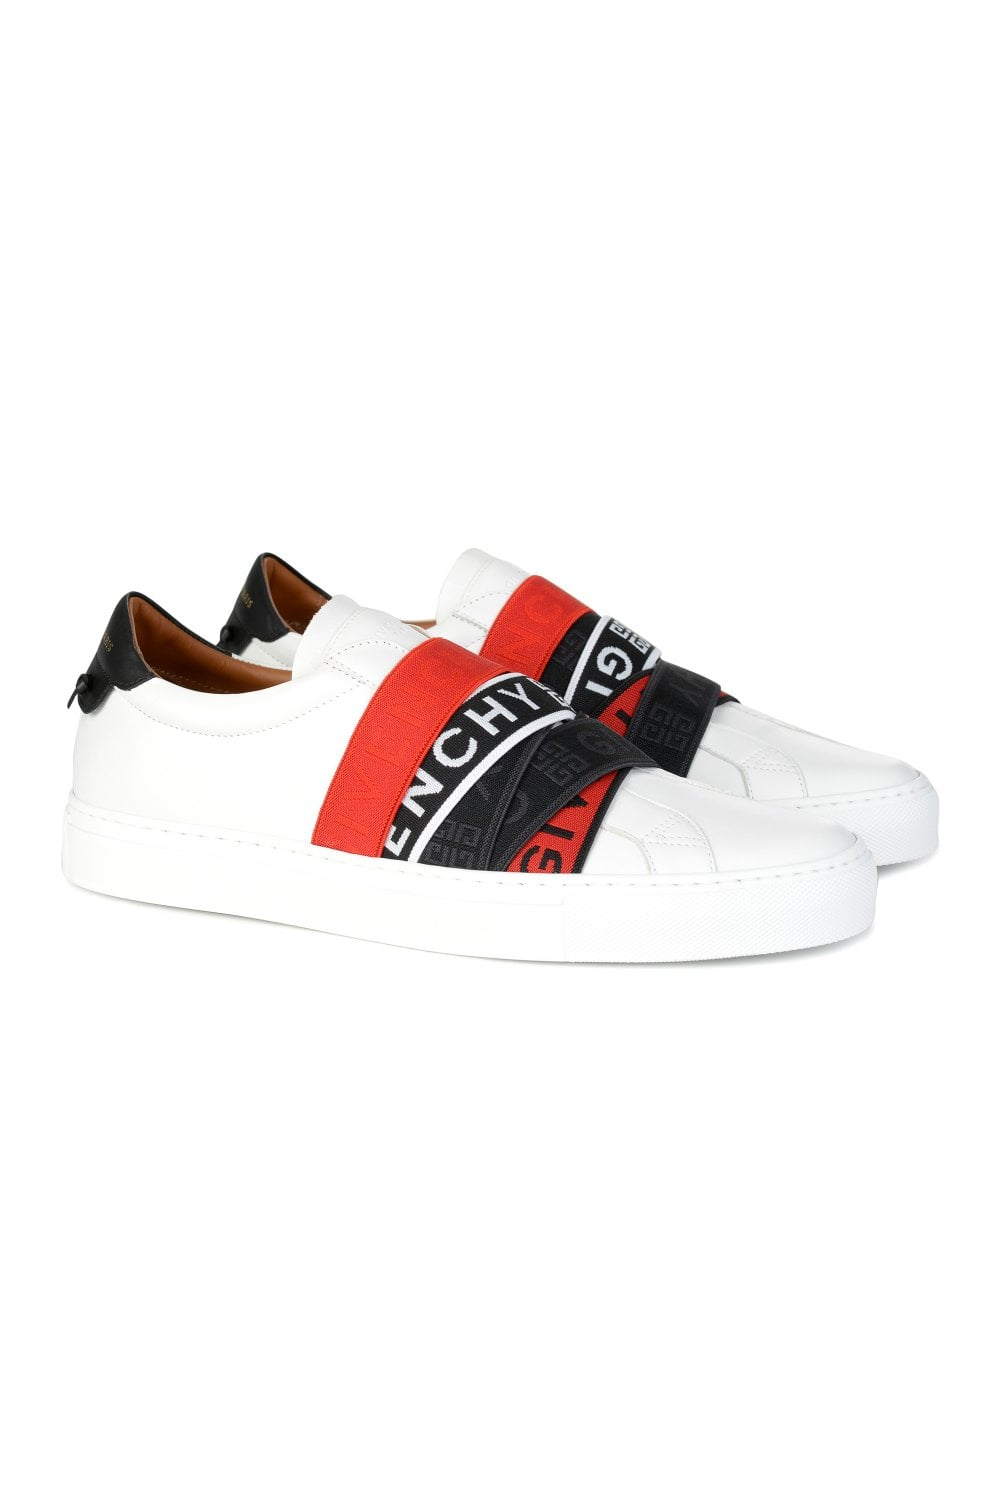 GIVENCHY Givenchy 4G Tape Logo Sneakers